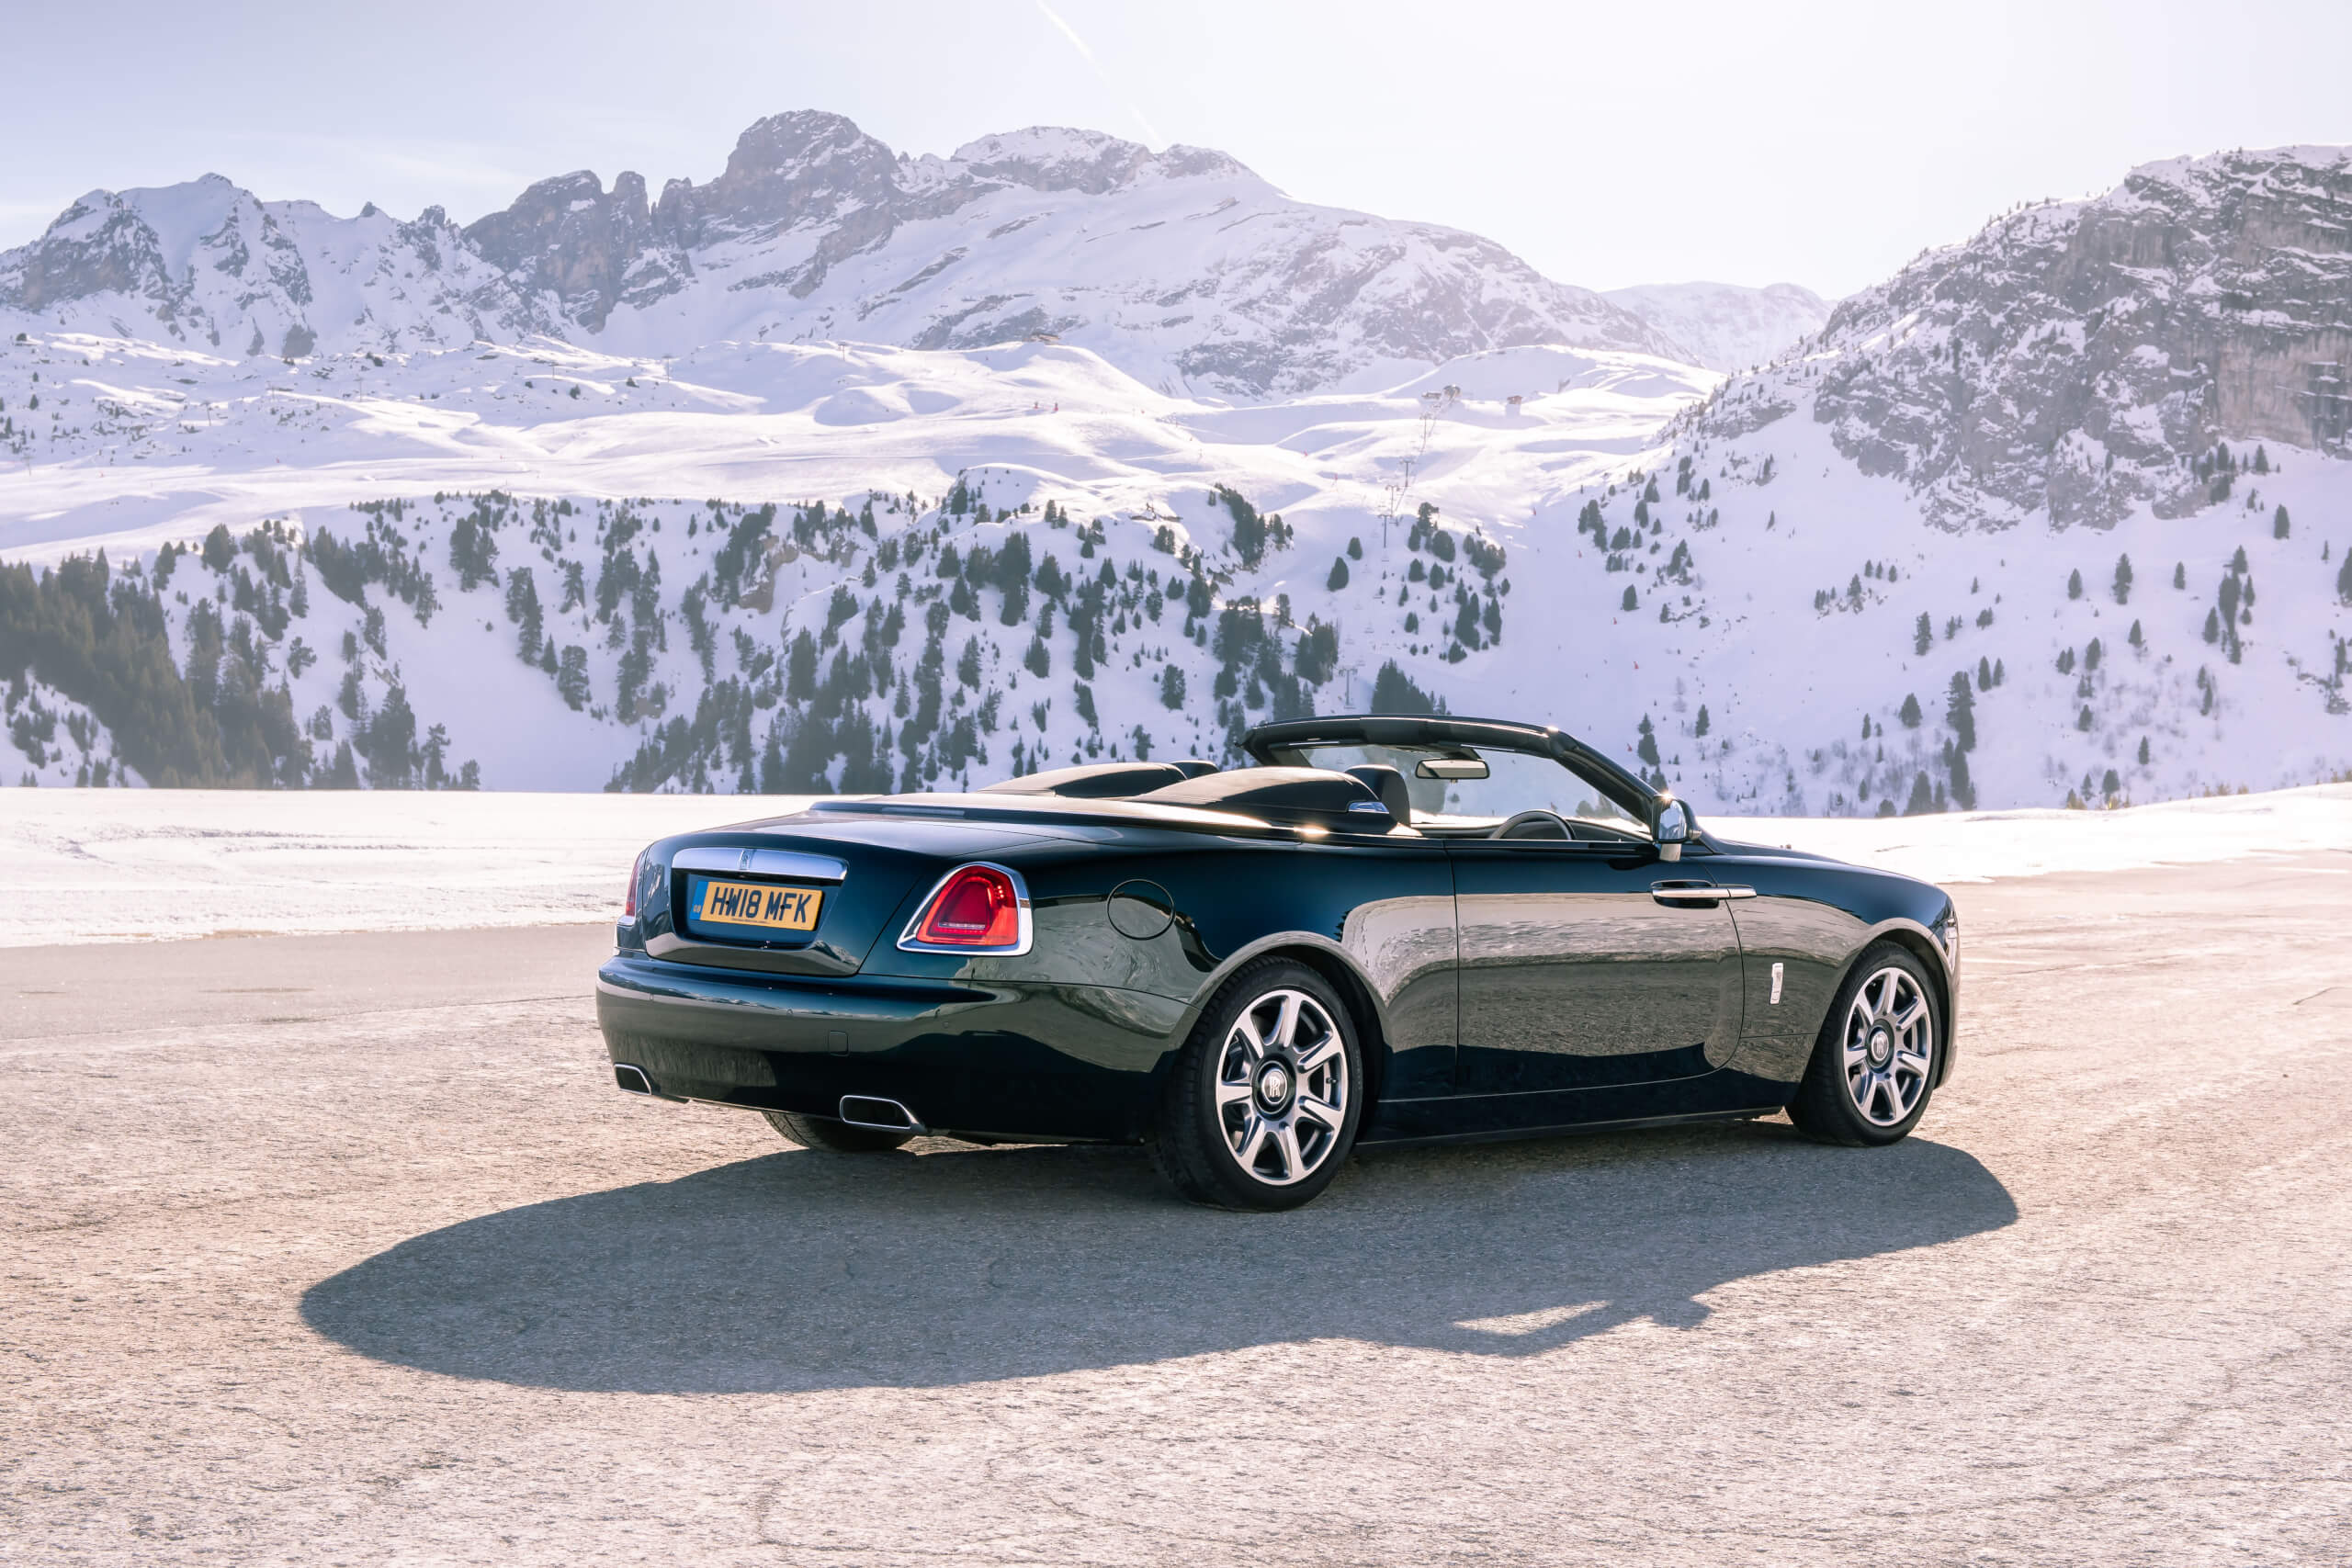 The Rolls-Royce Dawn Gets Roadster Looks With This Carbon Fiber Tonneau Cover